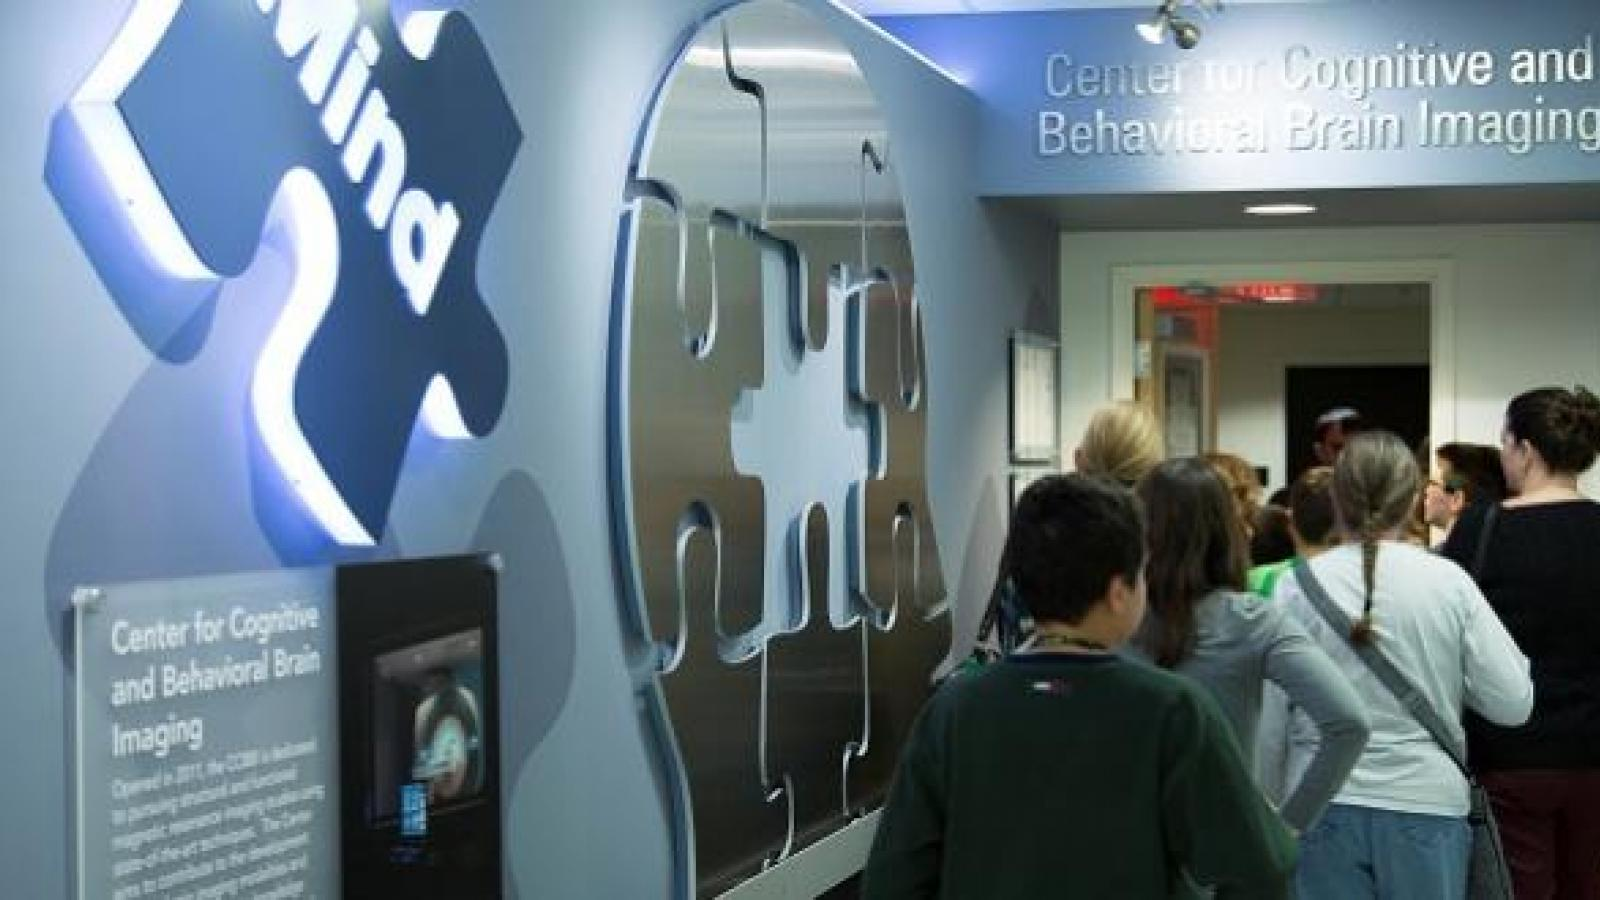 Middle school students take a tour of the CCBBI